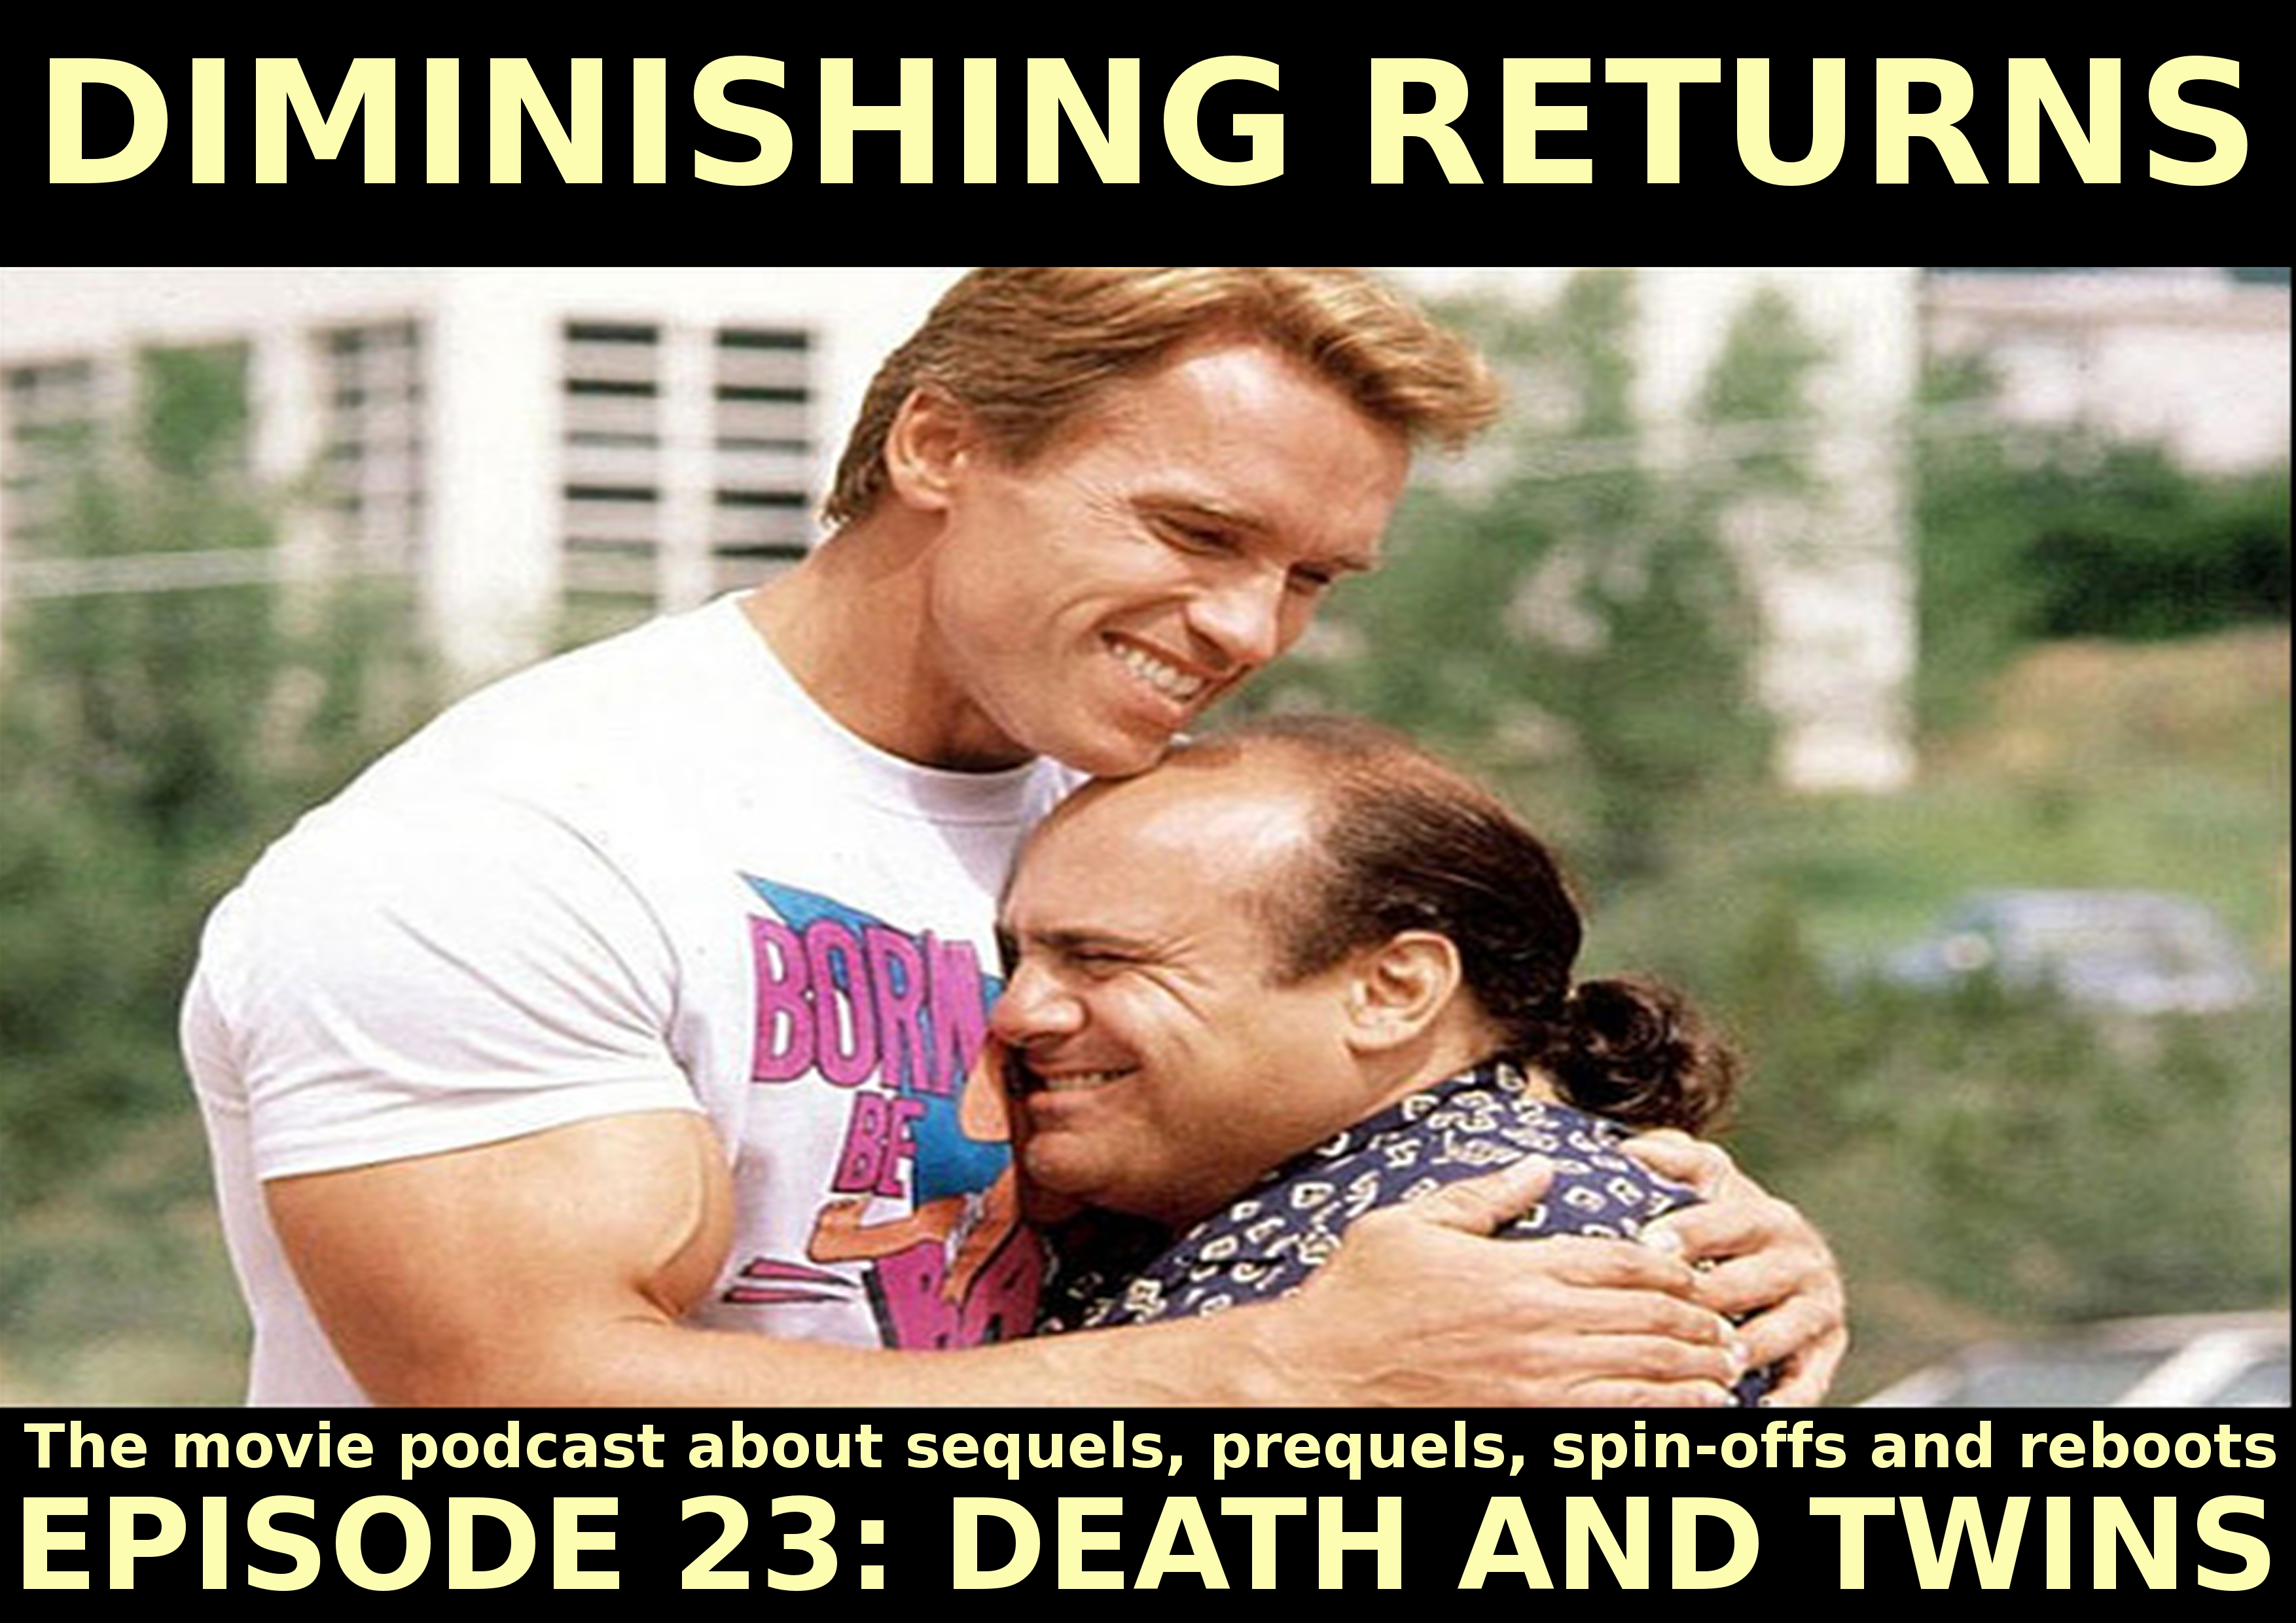 Diminishing Returns, the movie podcast about sequels prequels, spin-offs and reboots. Episode 23 Death and Twins. Not pictured: Chris and Allen.